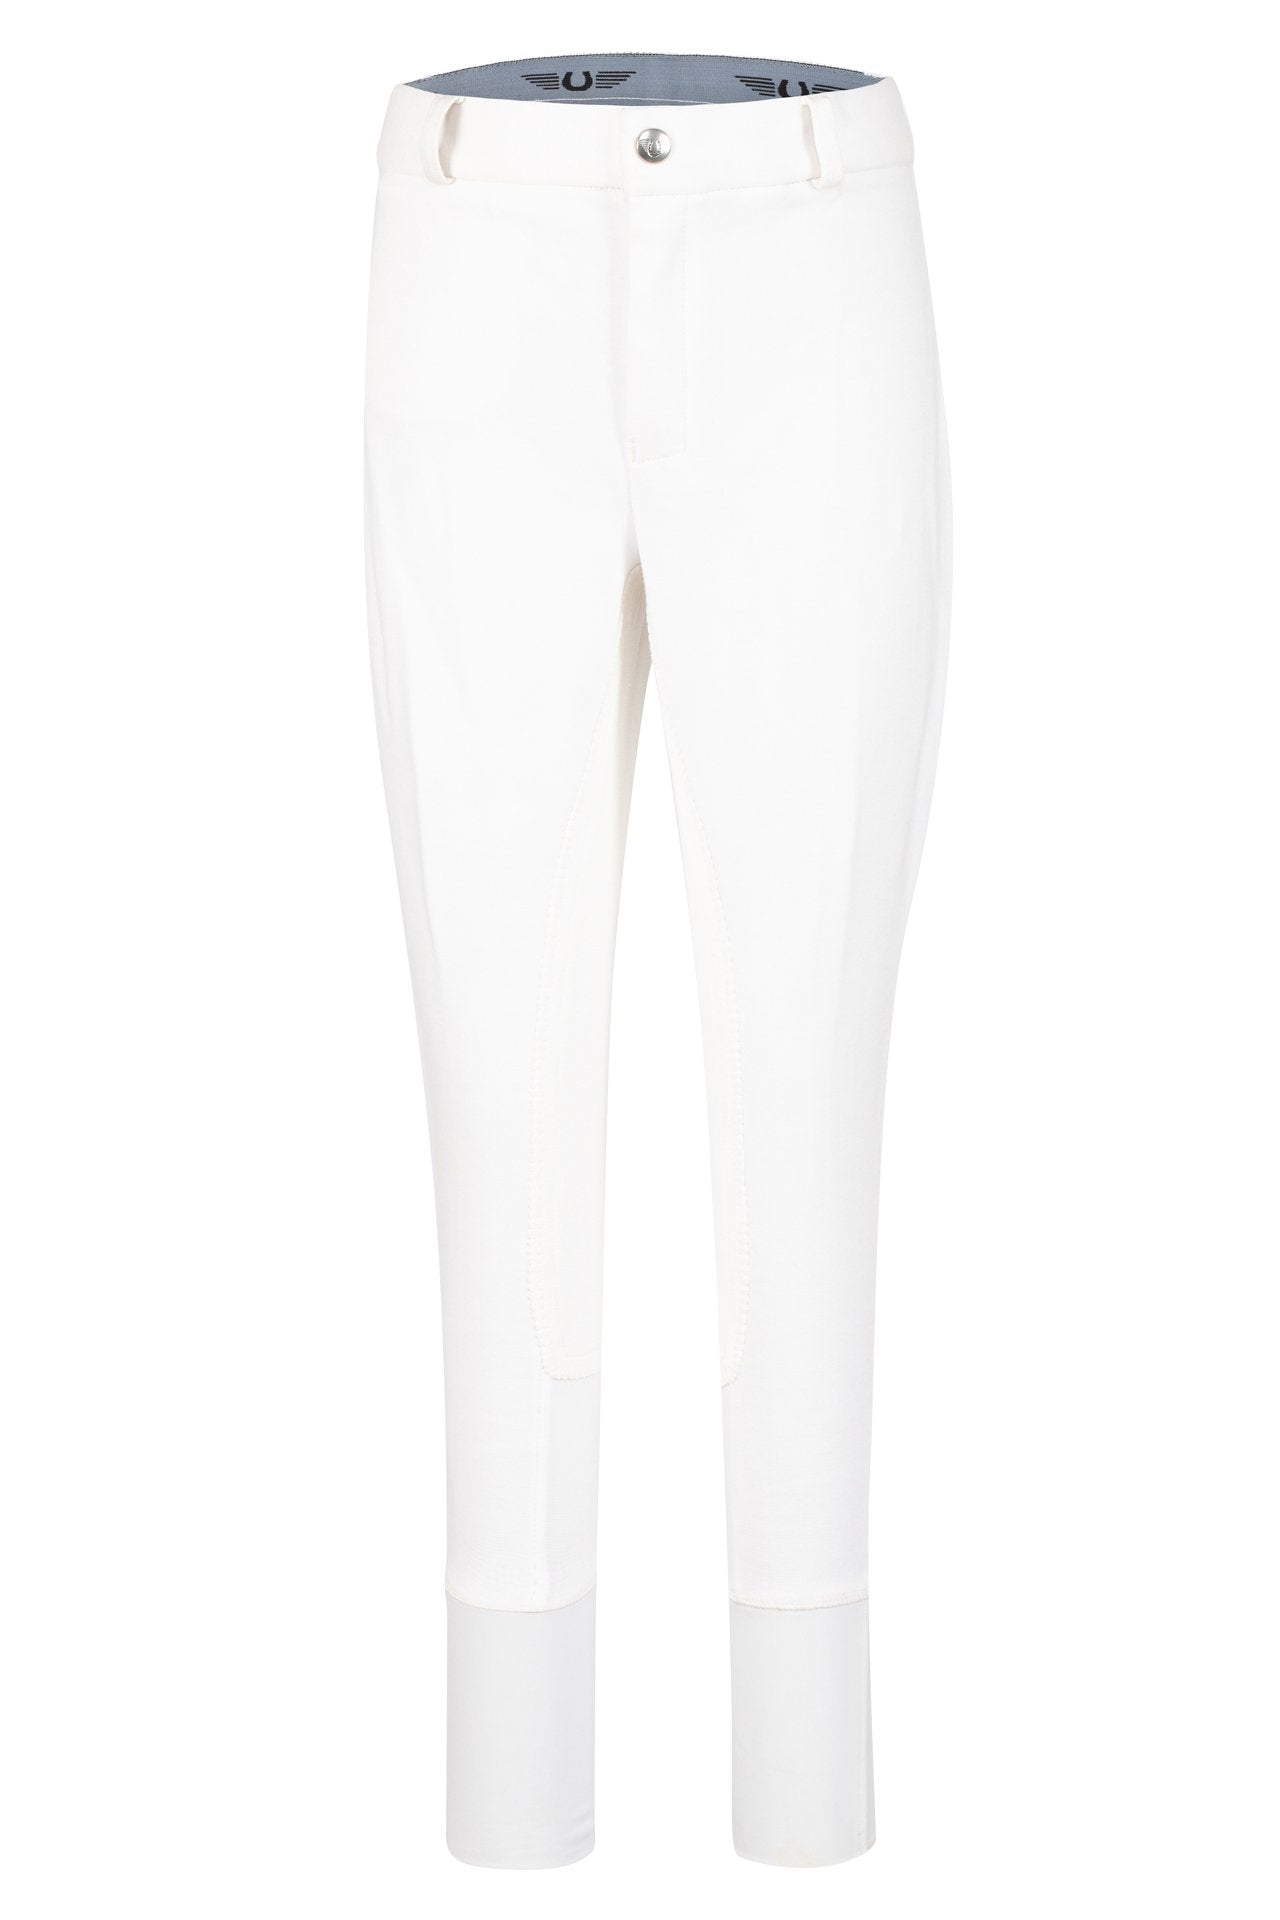 Children's Cotton Full Seat Breeches - TuffRider - Breeches.com